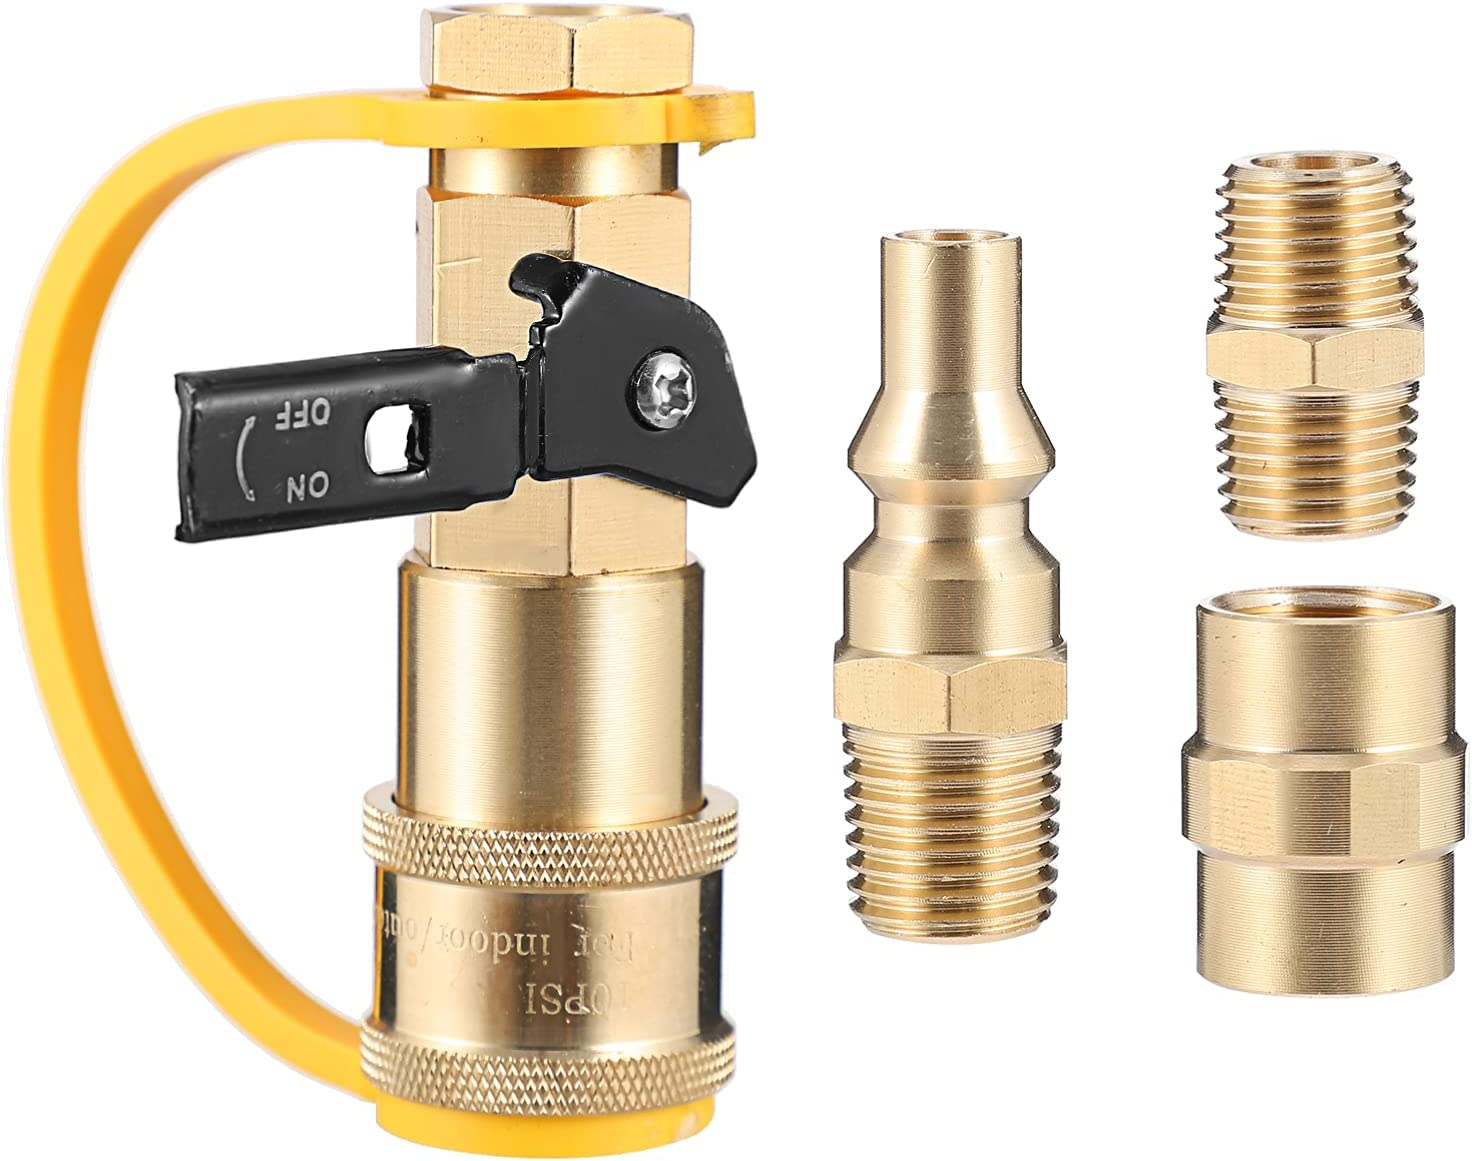 YARDWE 1 Set discount of Propane Quick Connection Hose C Adapters